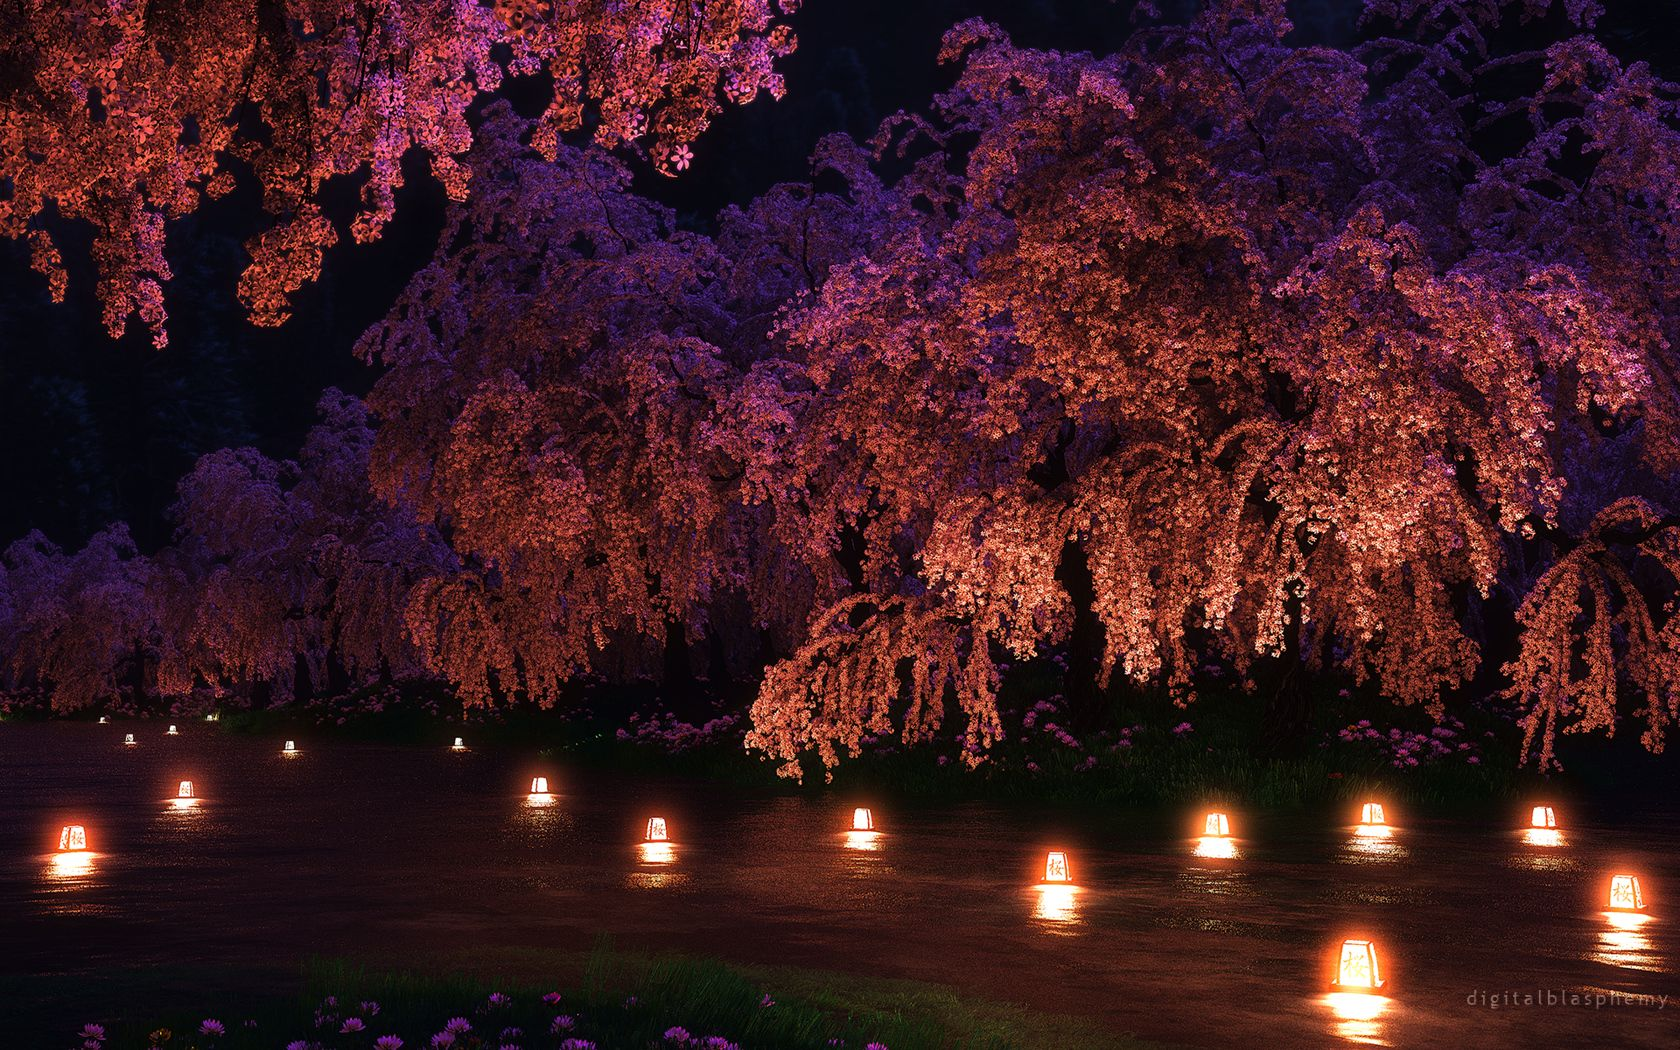 Excellent Site For Beautiful Digital Backgrounds For Electronic Devices Www Digitalblasphe Pink Night Lights Cherry Blossom Flowers Digital Art Photography